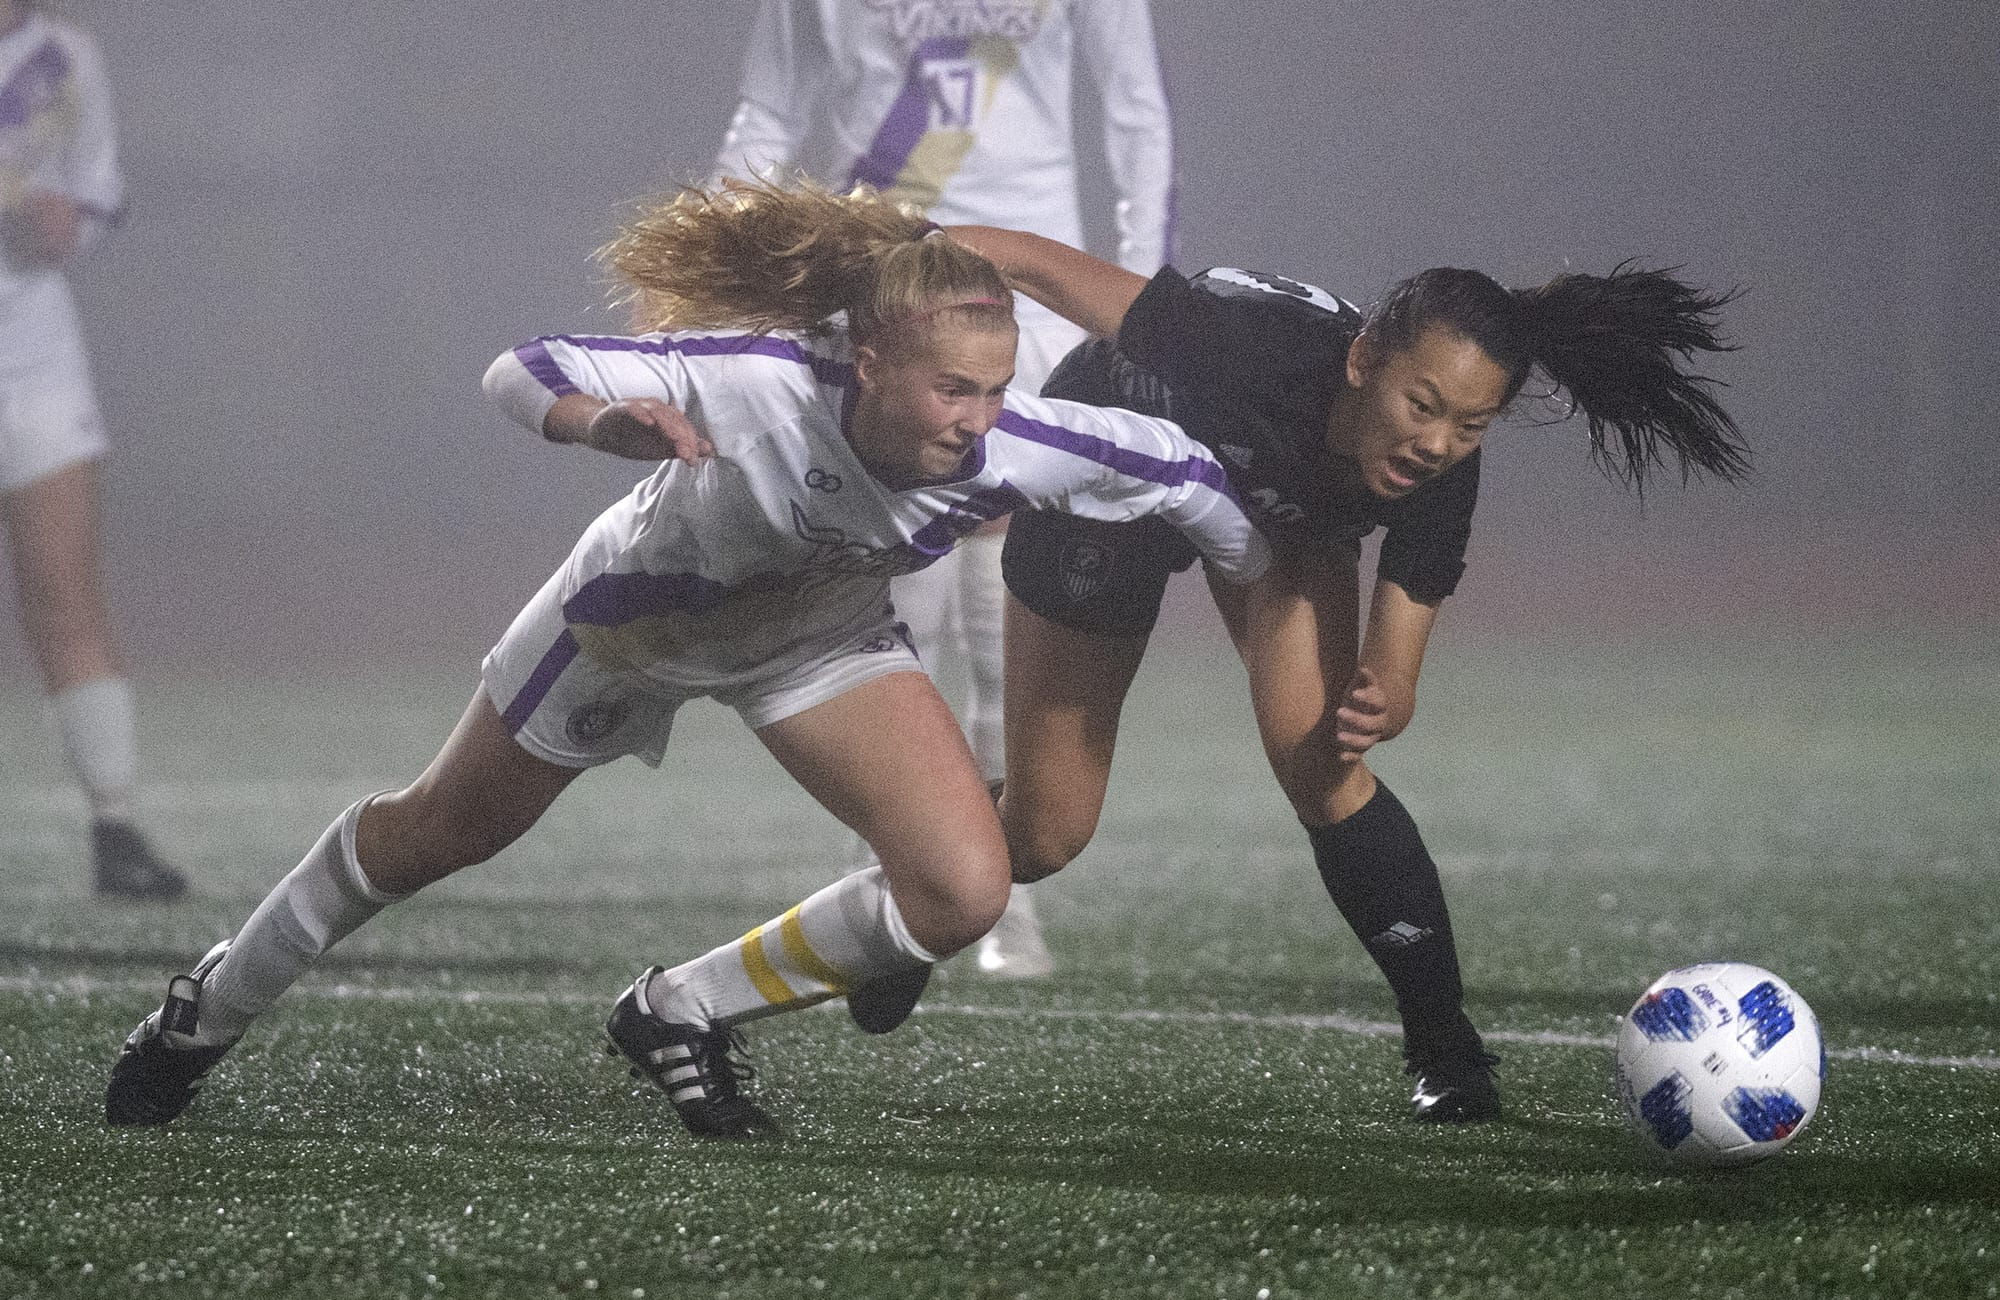 Soccer In The Fog. Other Sports Bracket Entry 13. Photo by Alisha Jucevic